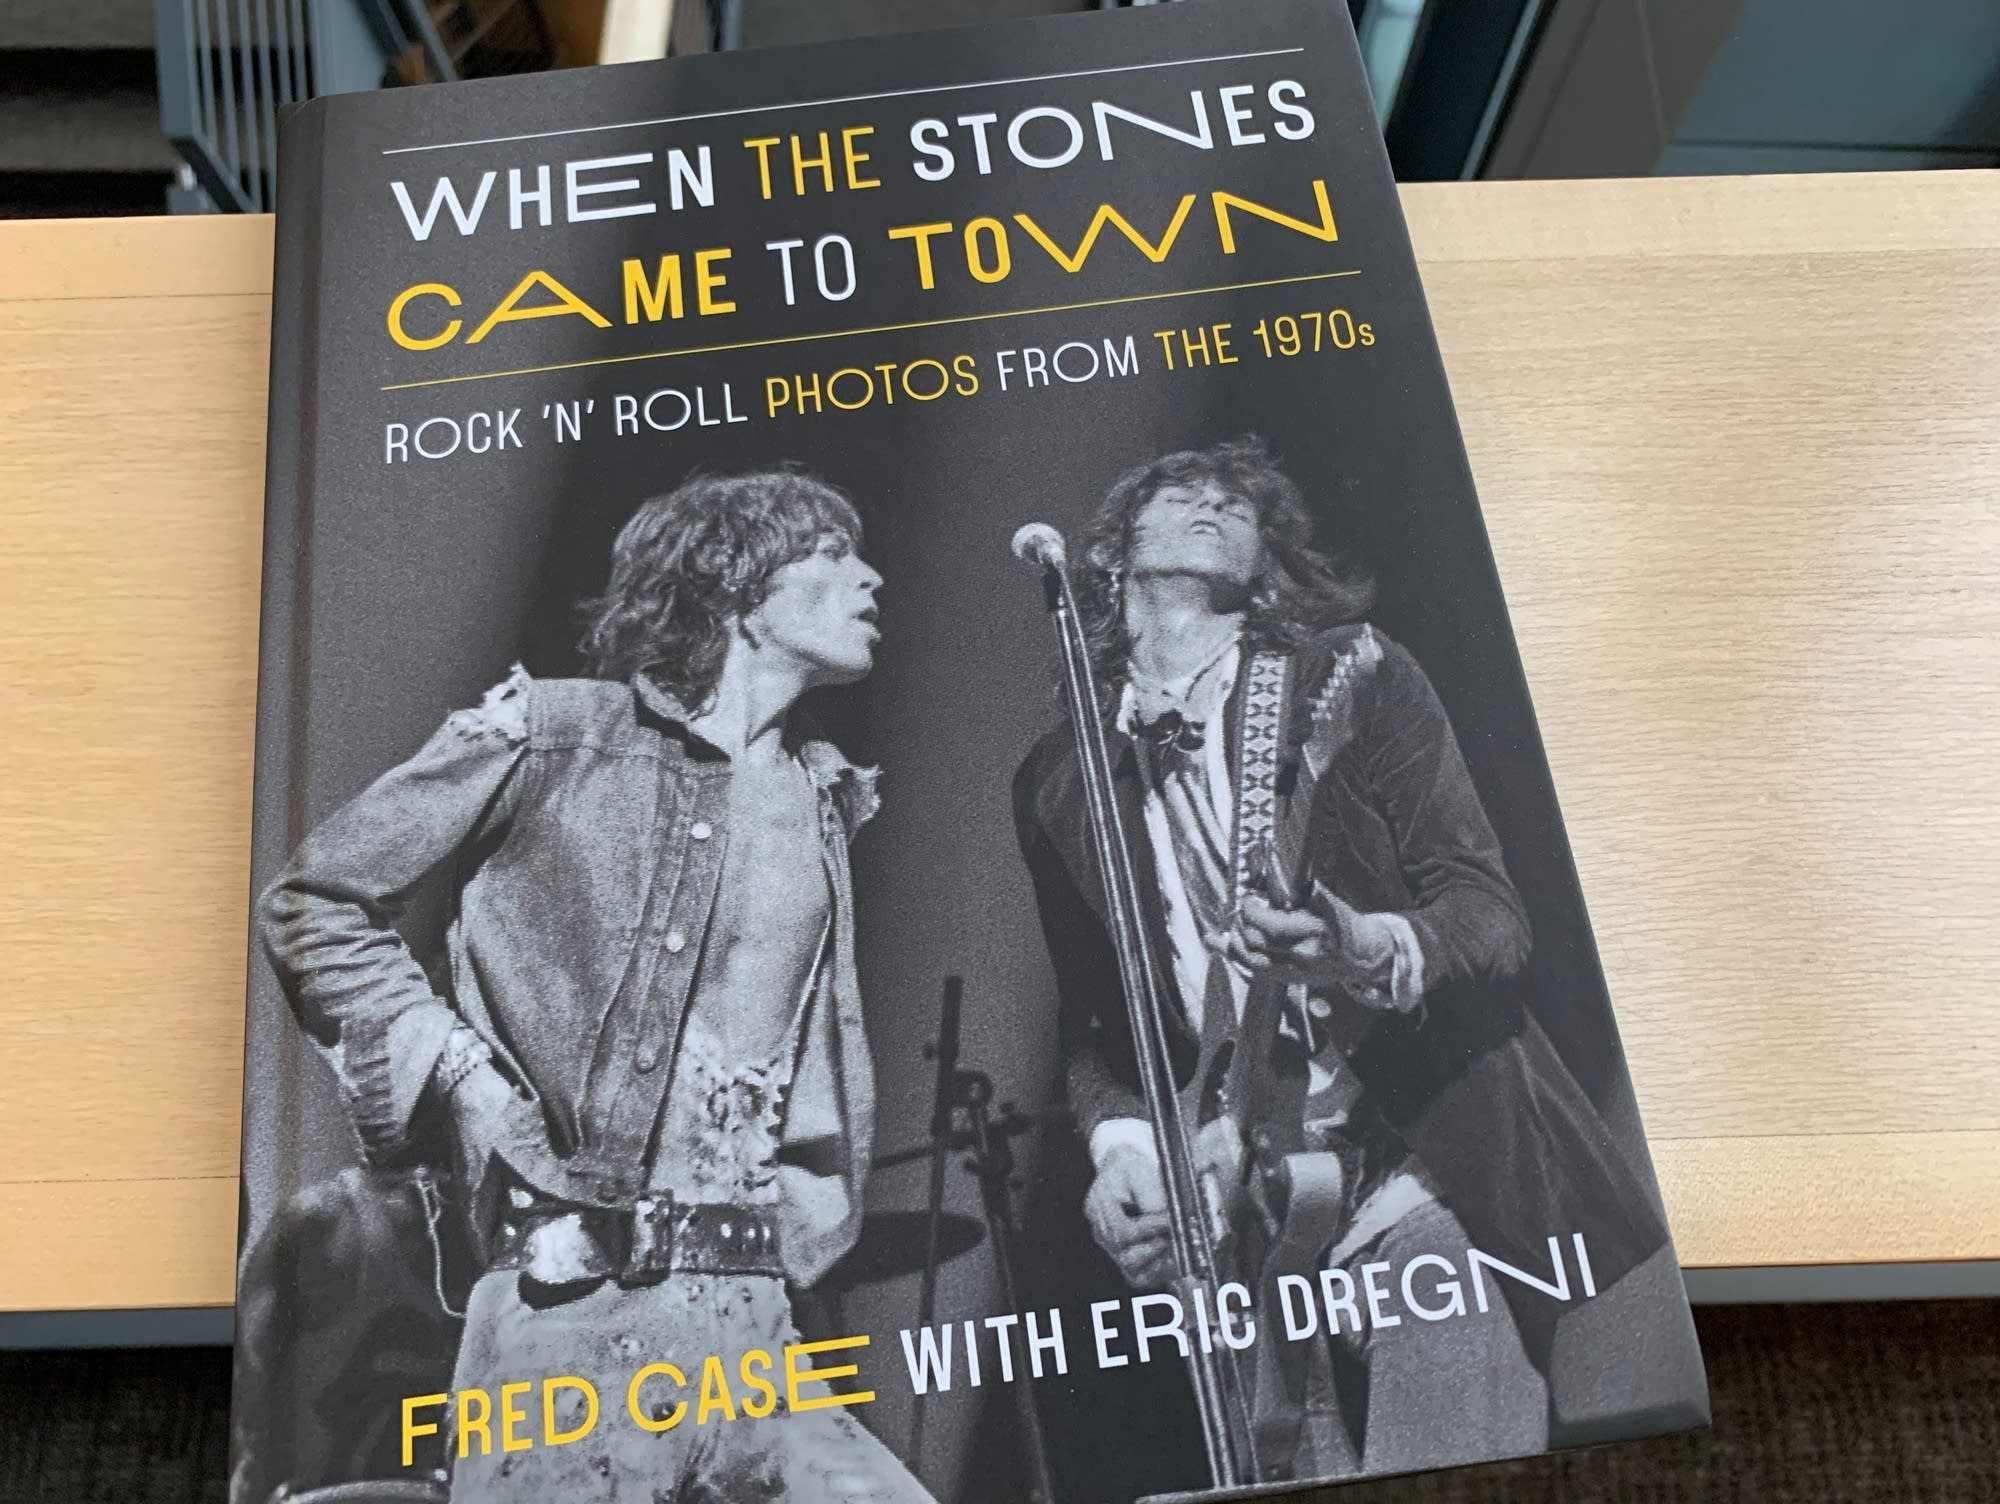 'When the Stones Came to Town' by Fred Case with Eric Dregni.